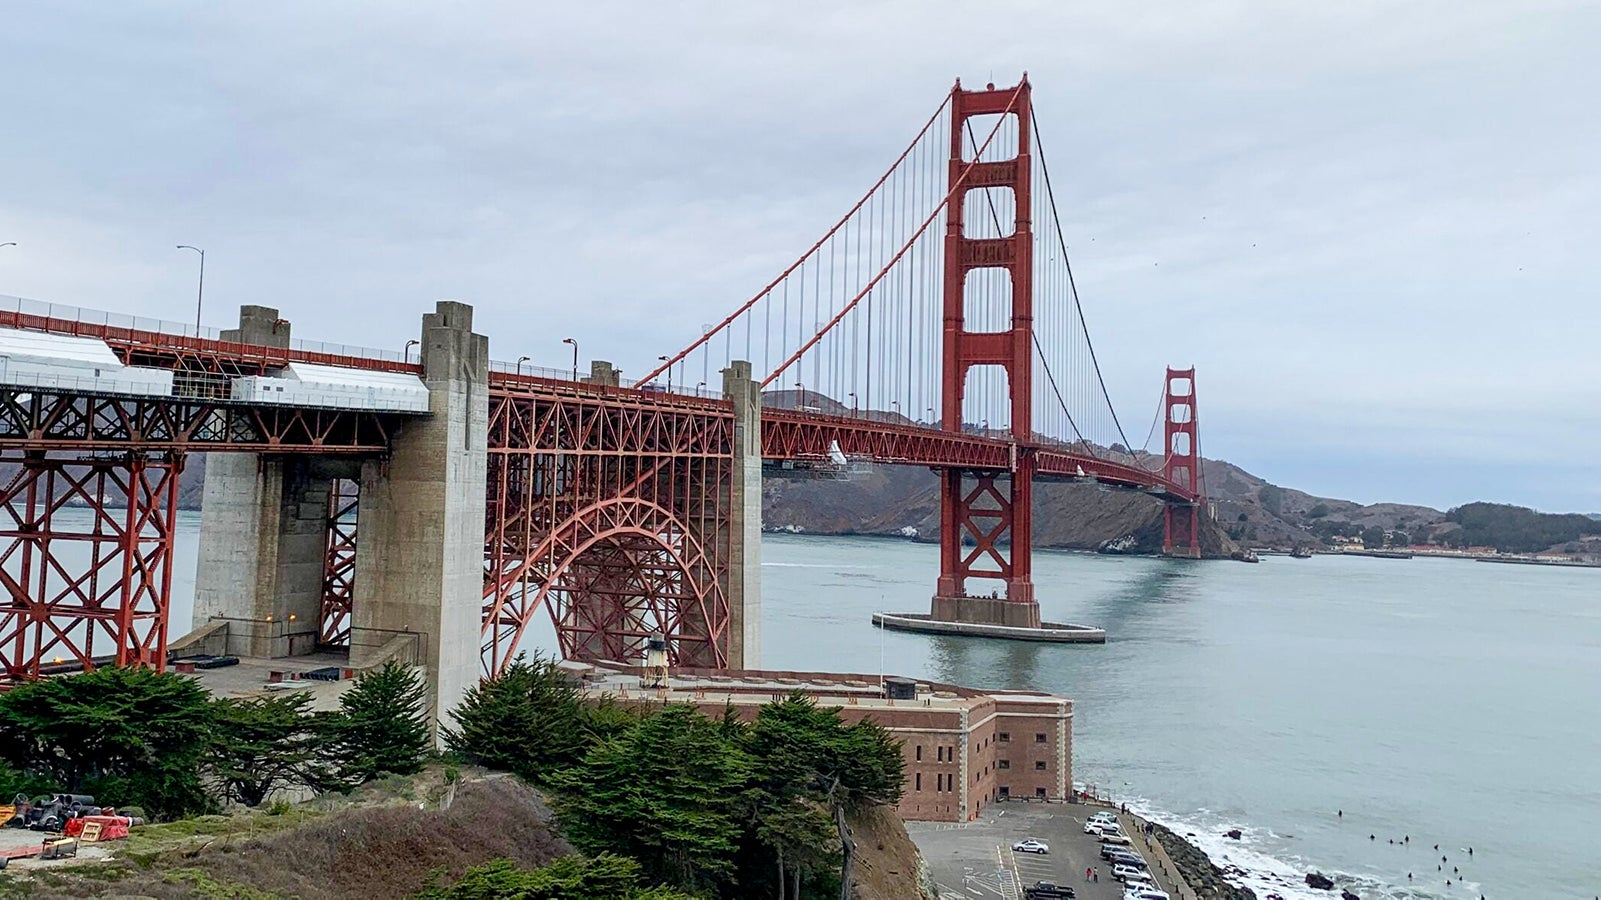 San Francisco announces stricter lockdown; Can you transit airports under quarantine?